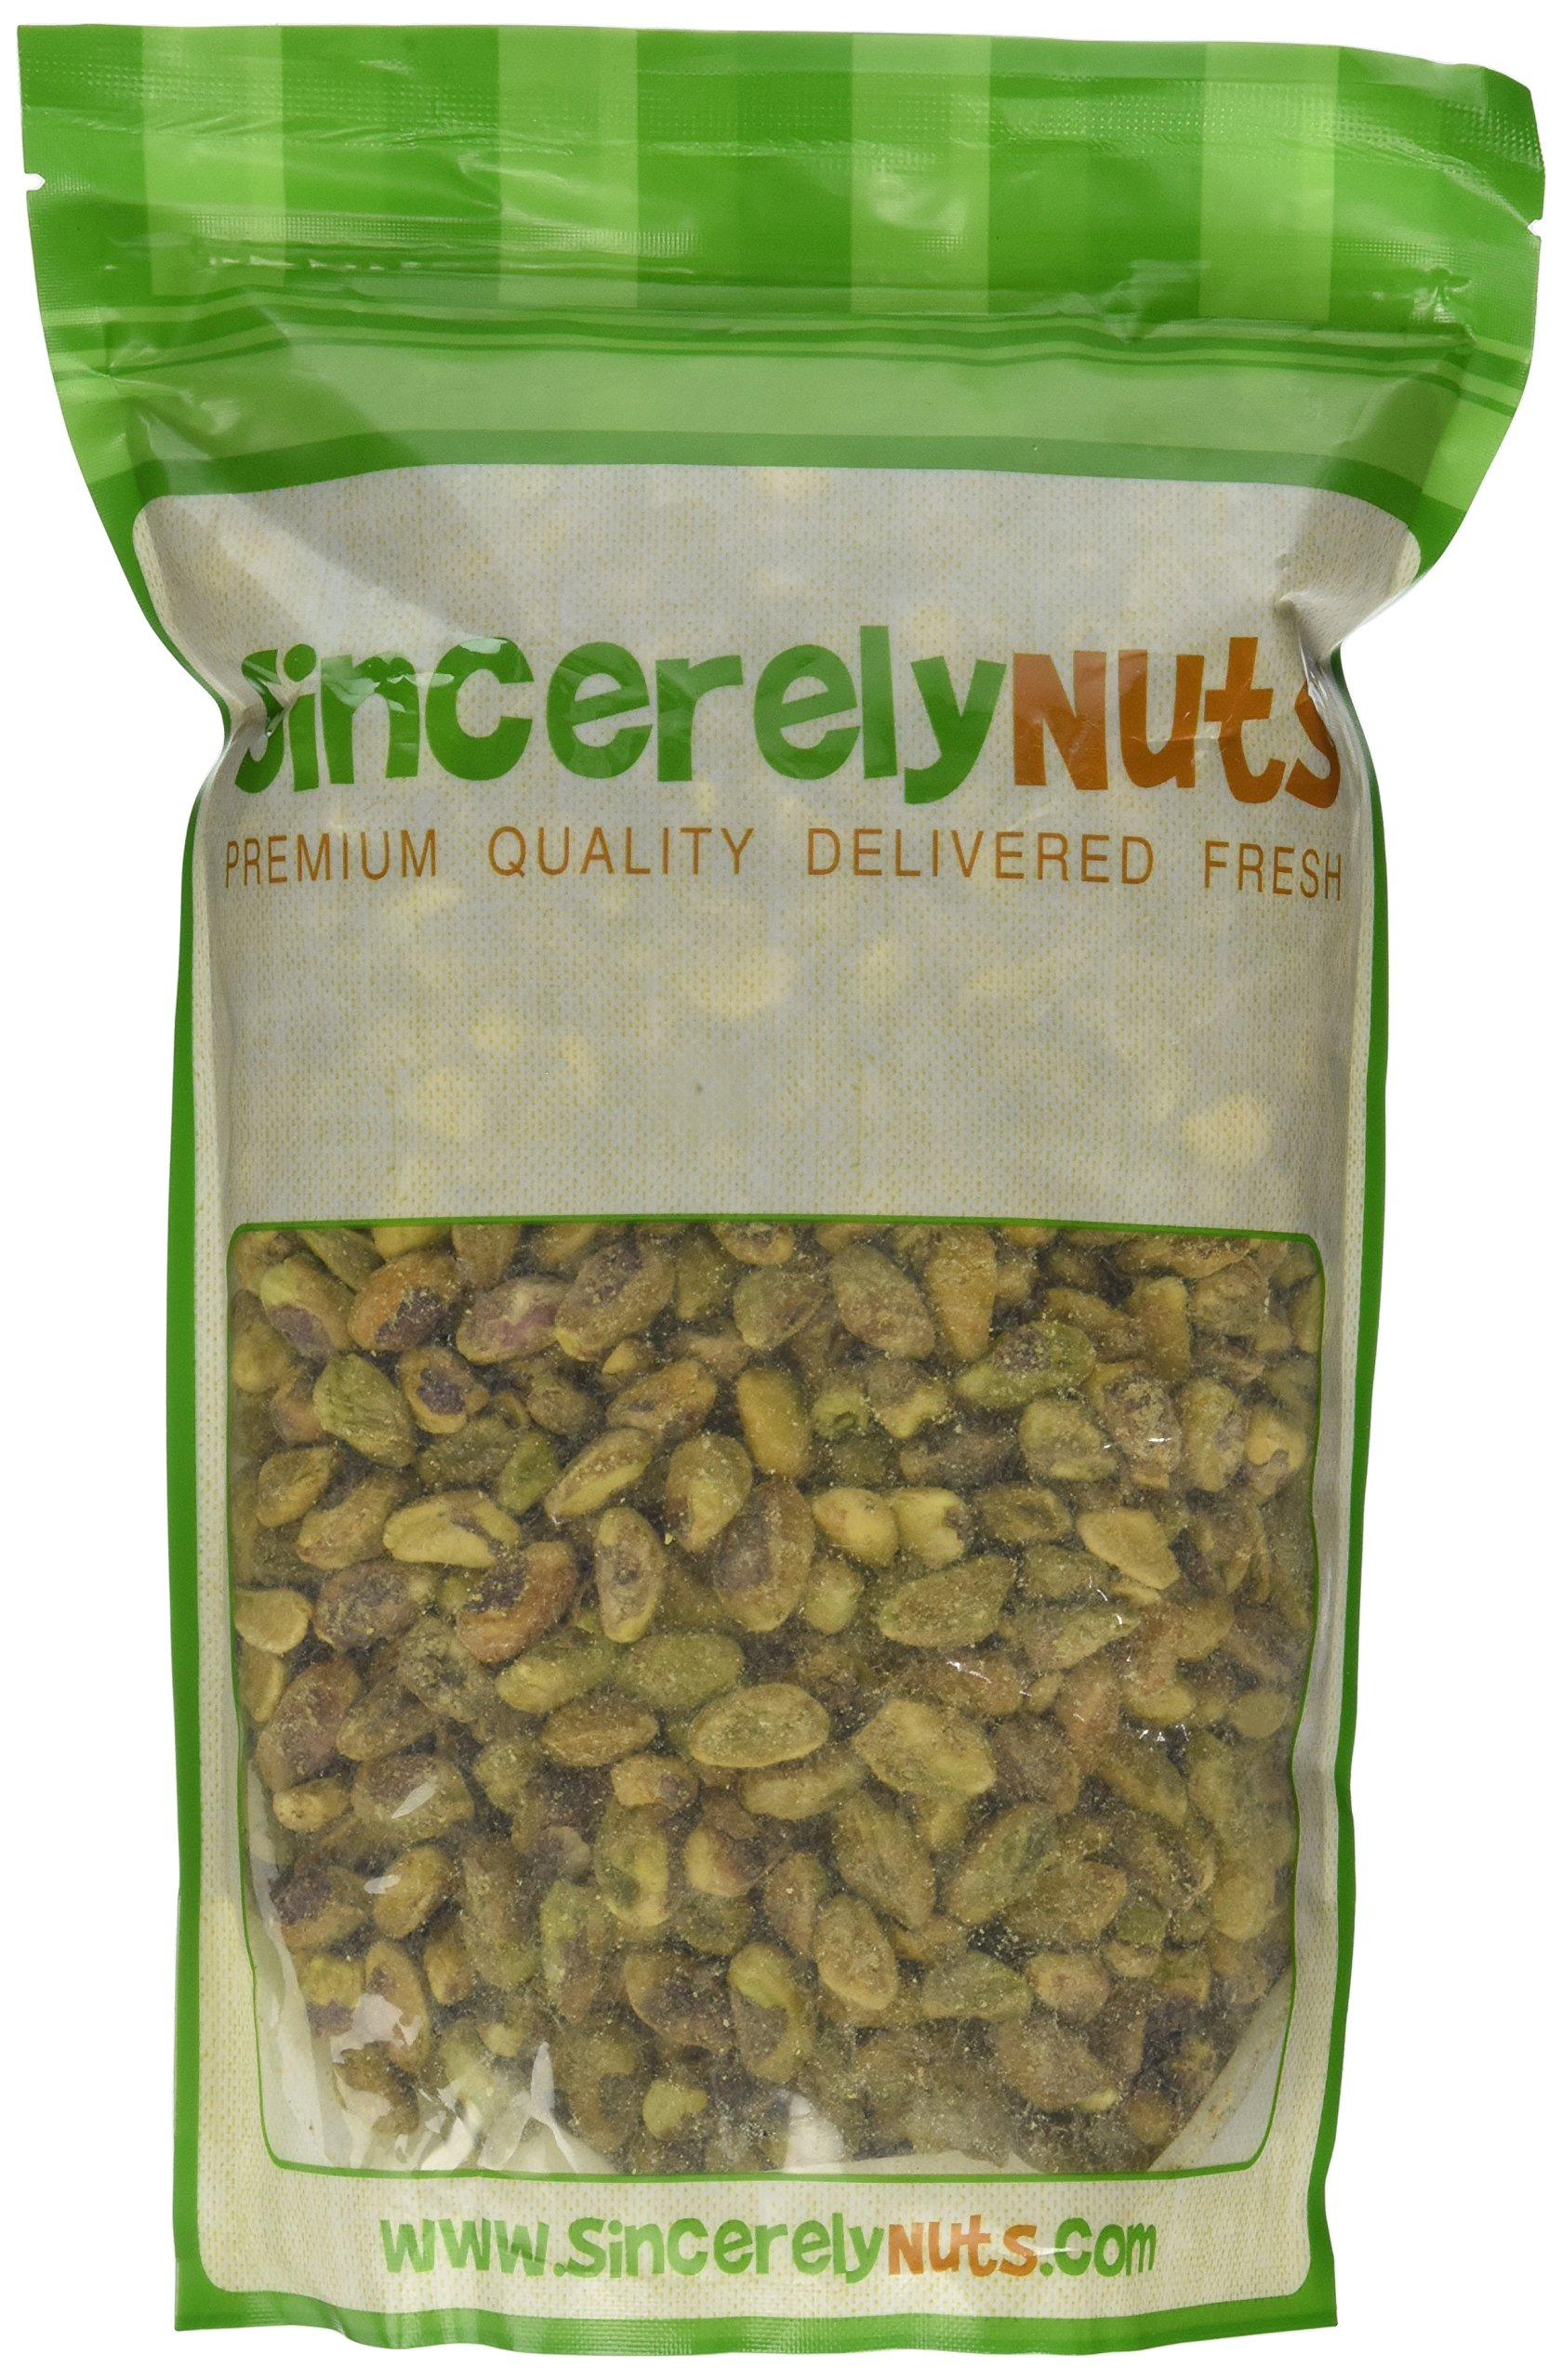 Sincerely Nuts Pistachios Roasted & Unsalted Kernels (No Shell) - 2 Lb. Bag - Healthy Snack Food | Great for Cooking | Source of Fiber, Protein & Vitamins | Gourmet | Vegan, Kosher & Gluten Free by Sincerely Nuts (Image #2)